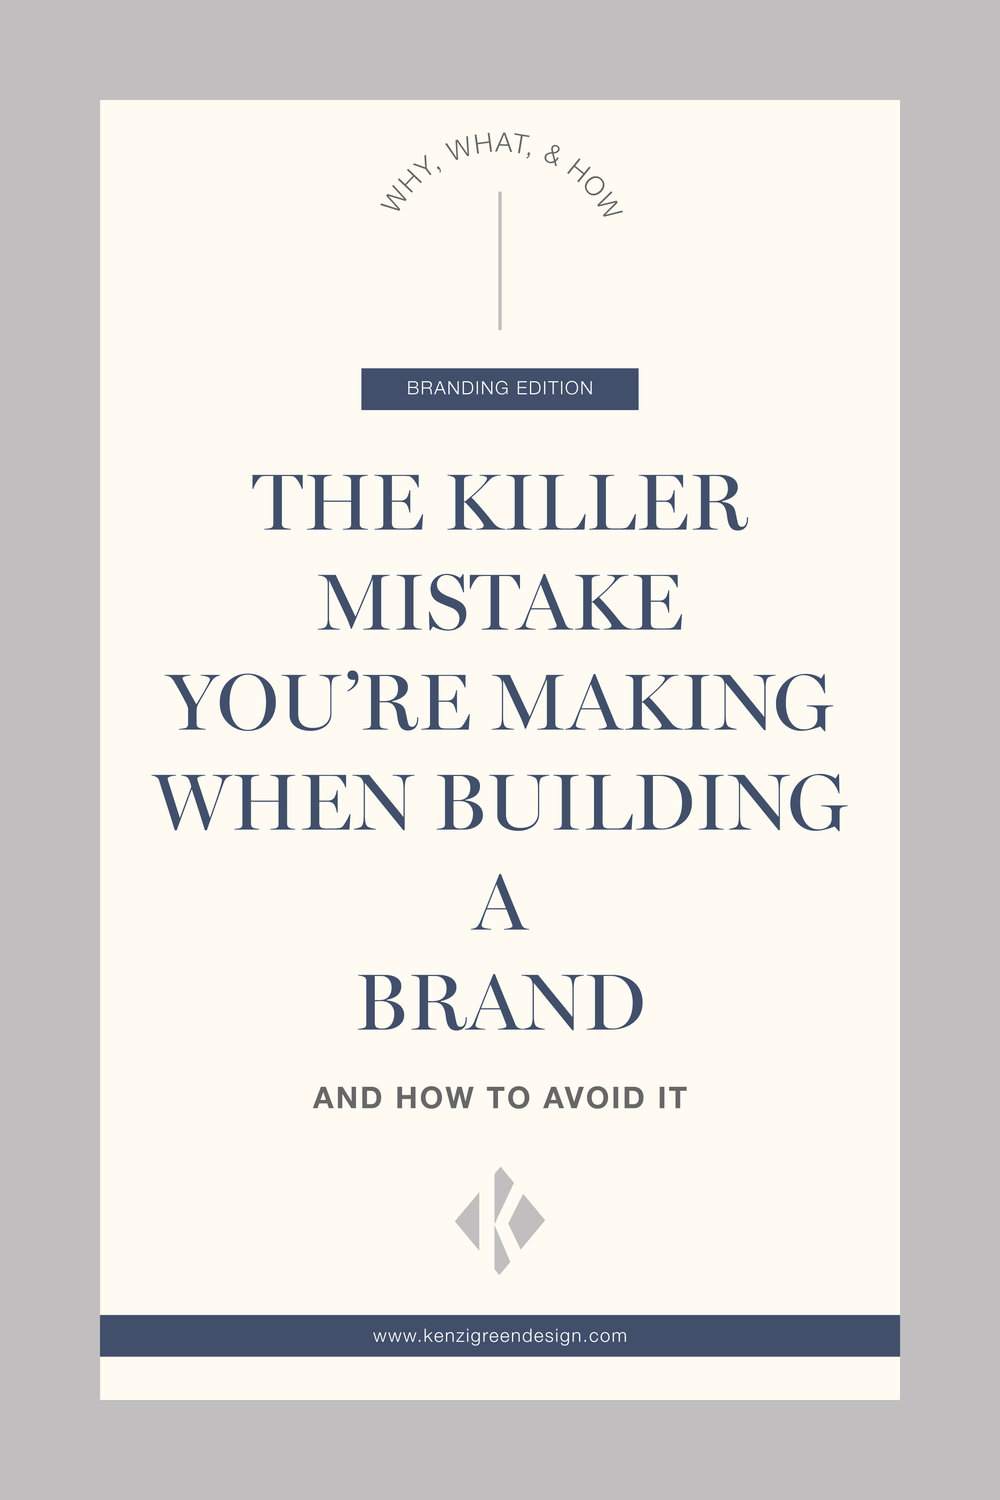 The Killer Mistake You're Making When Building A Brand